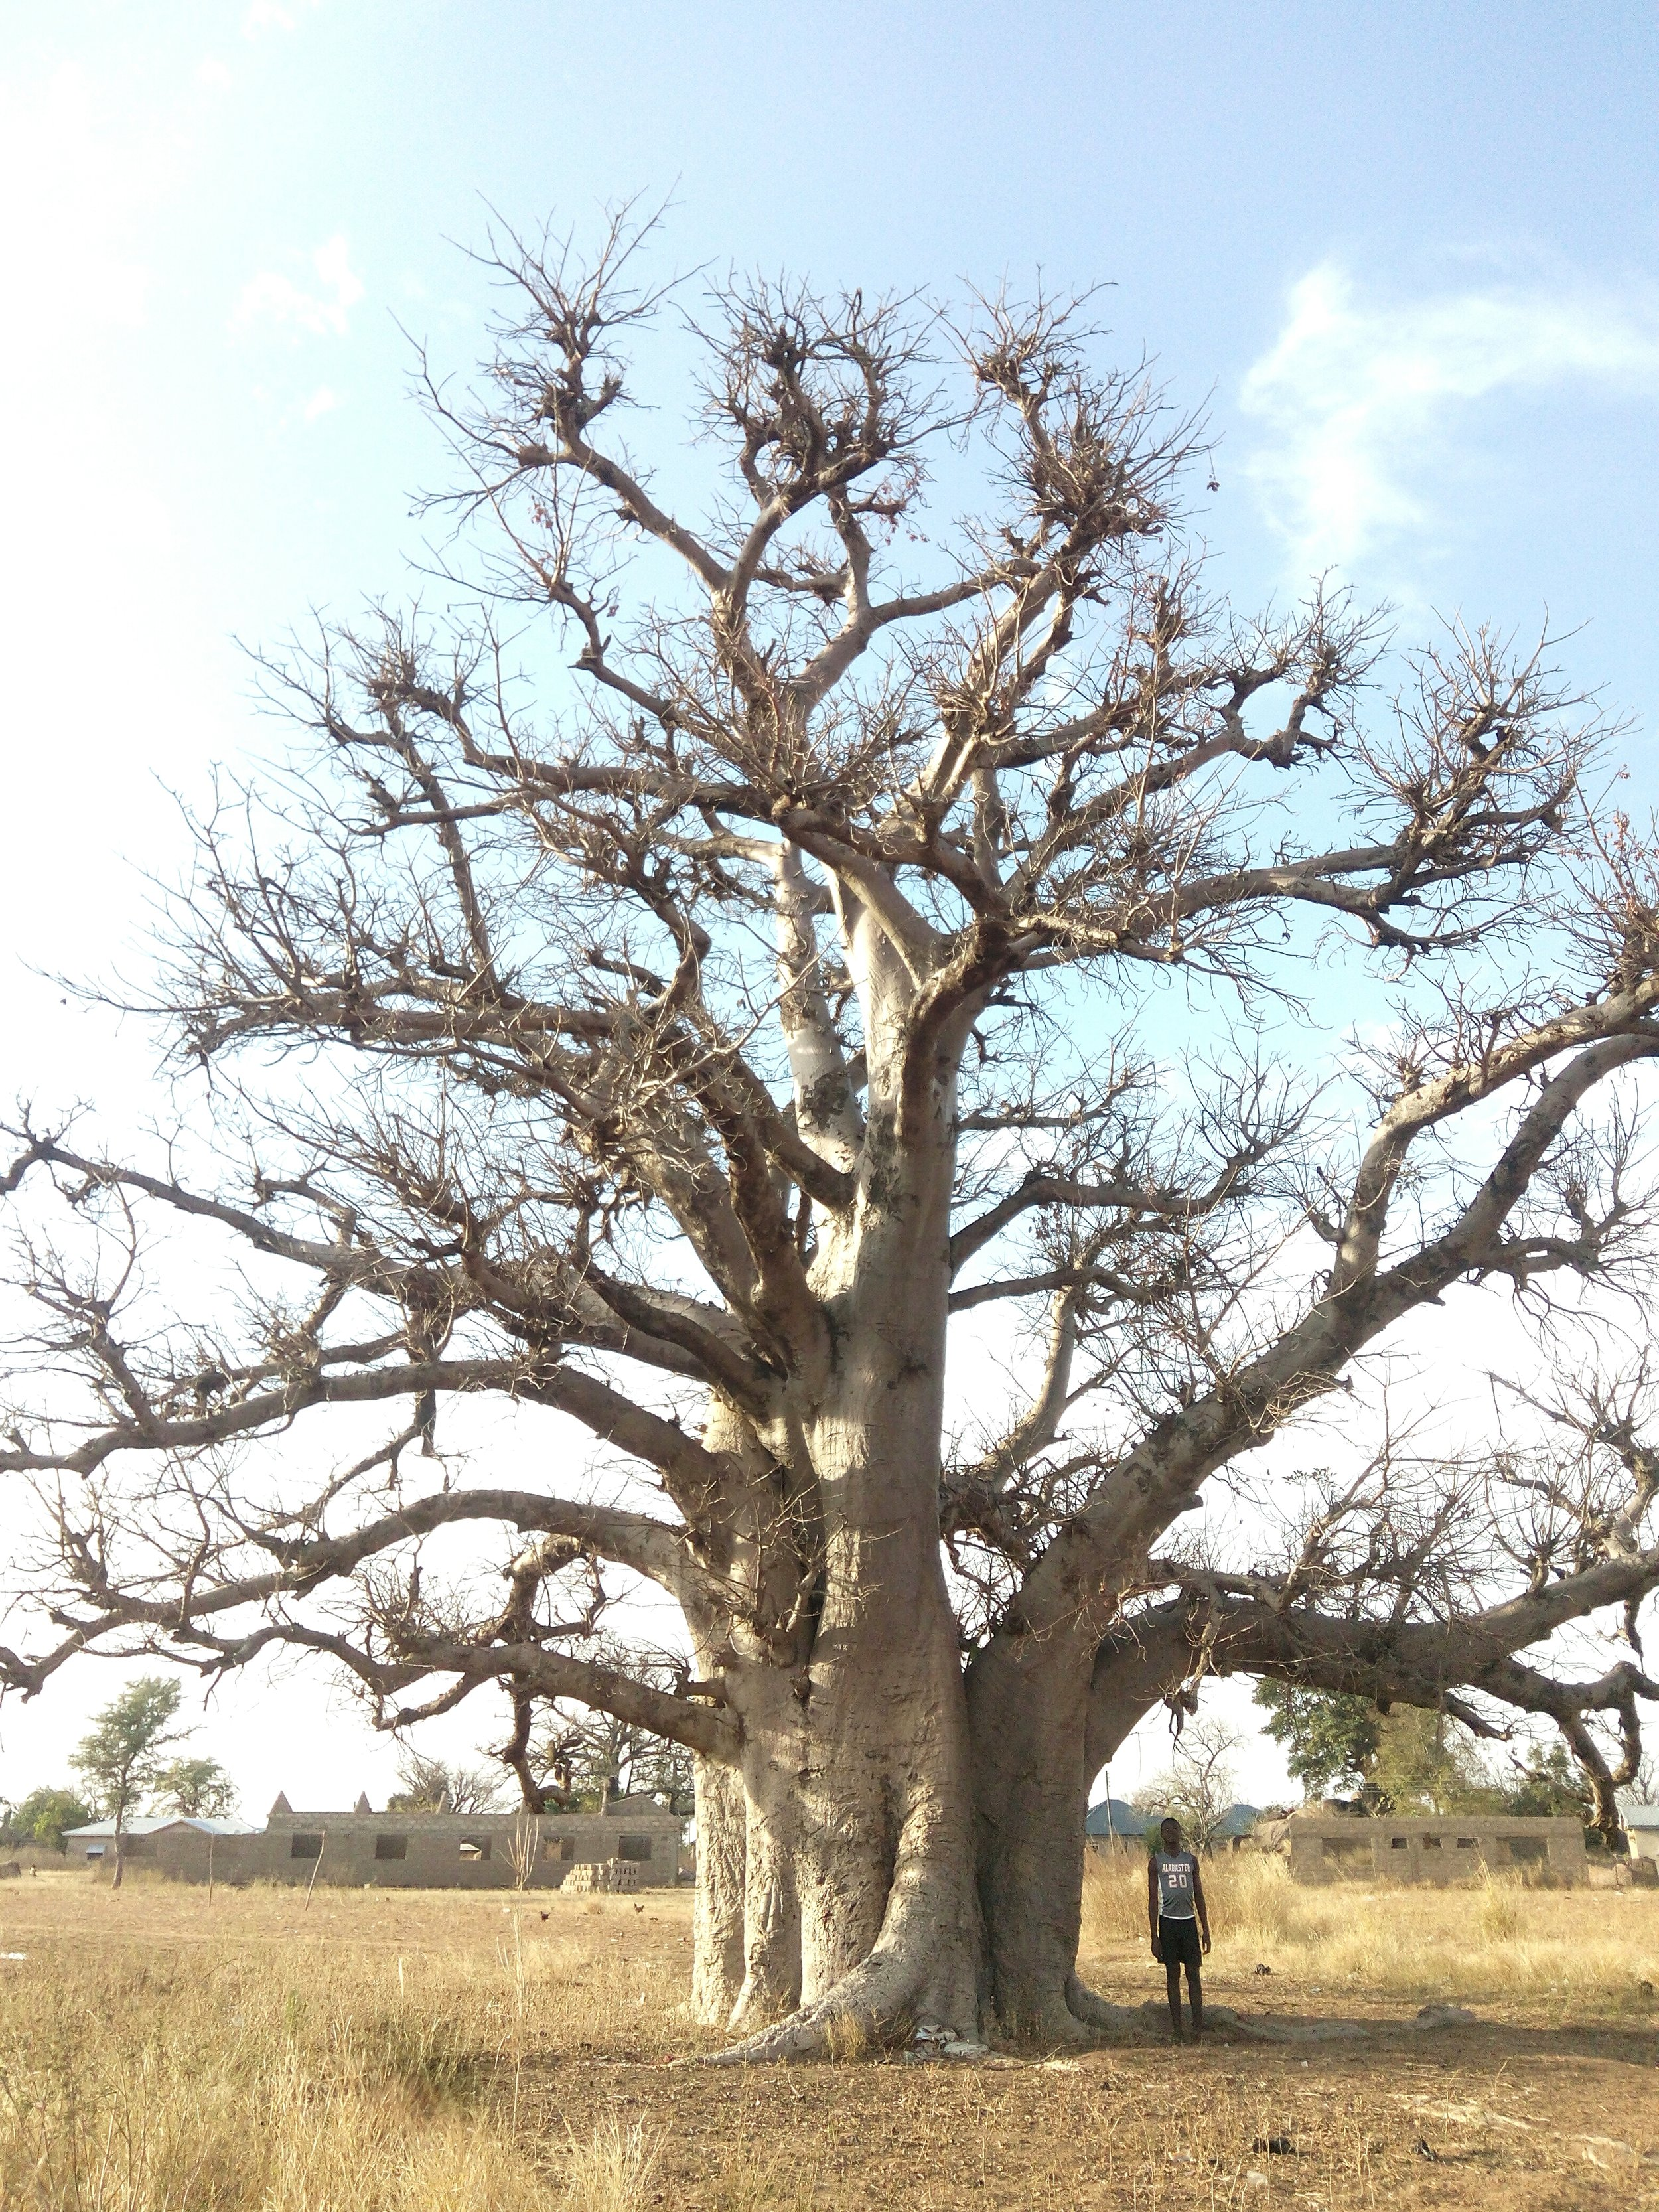 """A young Farefare man, roughly 5'8"""", stands next to a baobab tree. The tree loses its leaves in the dry season."""